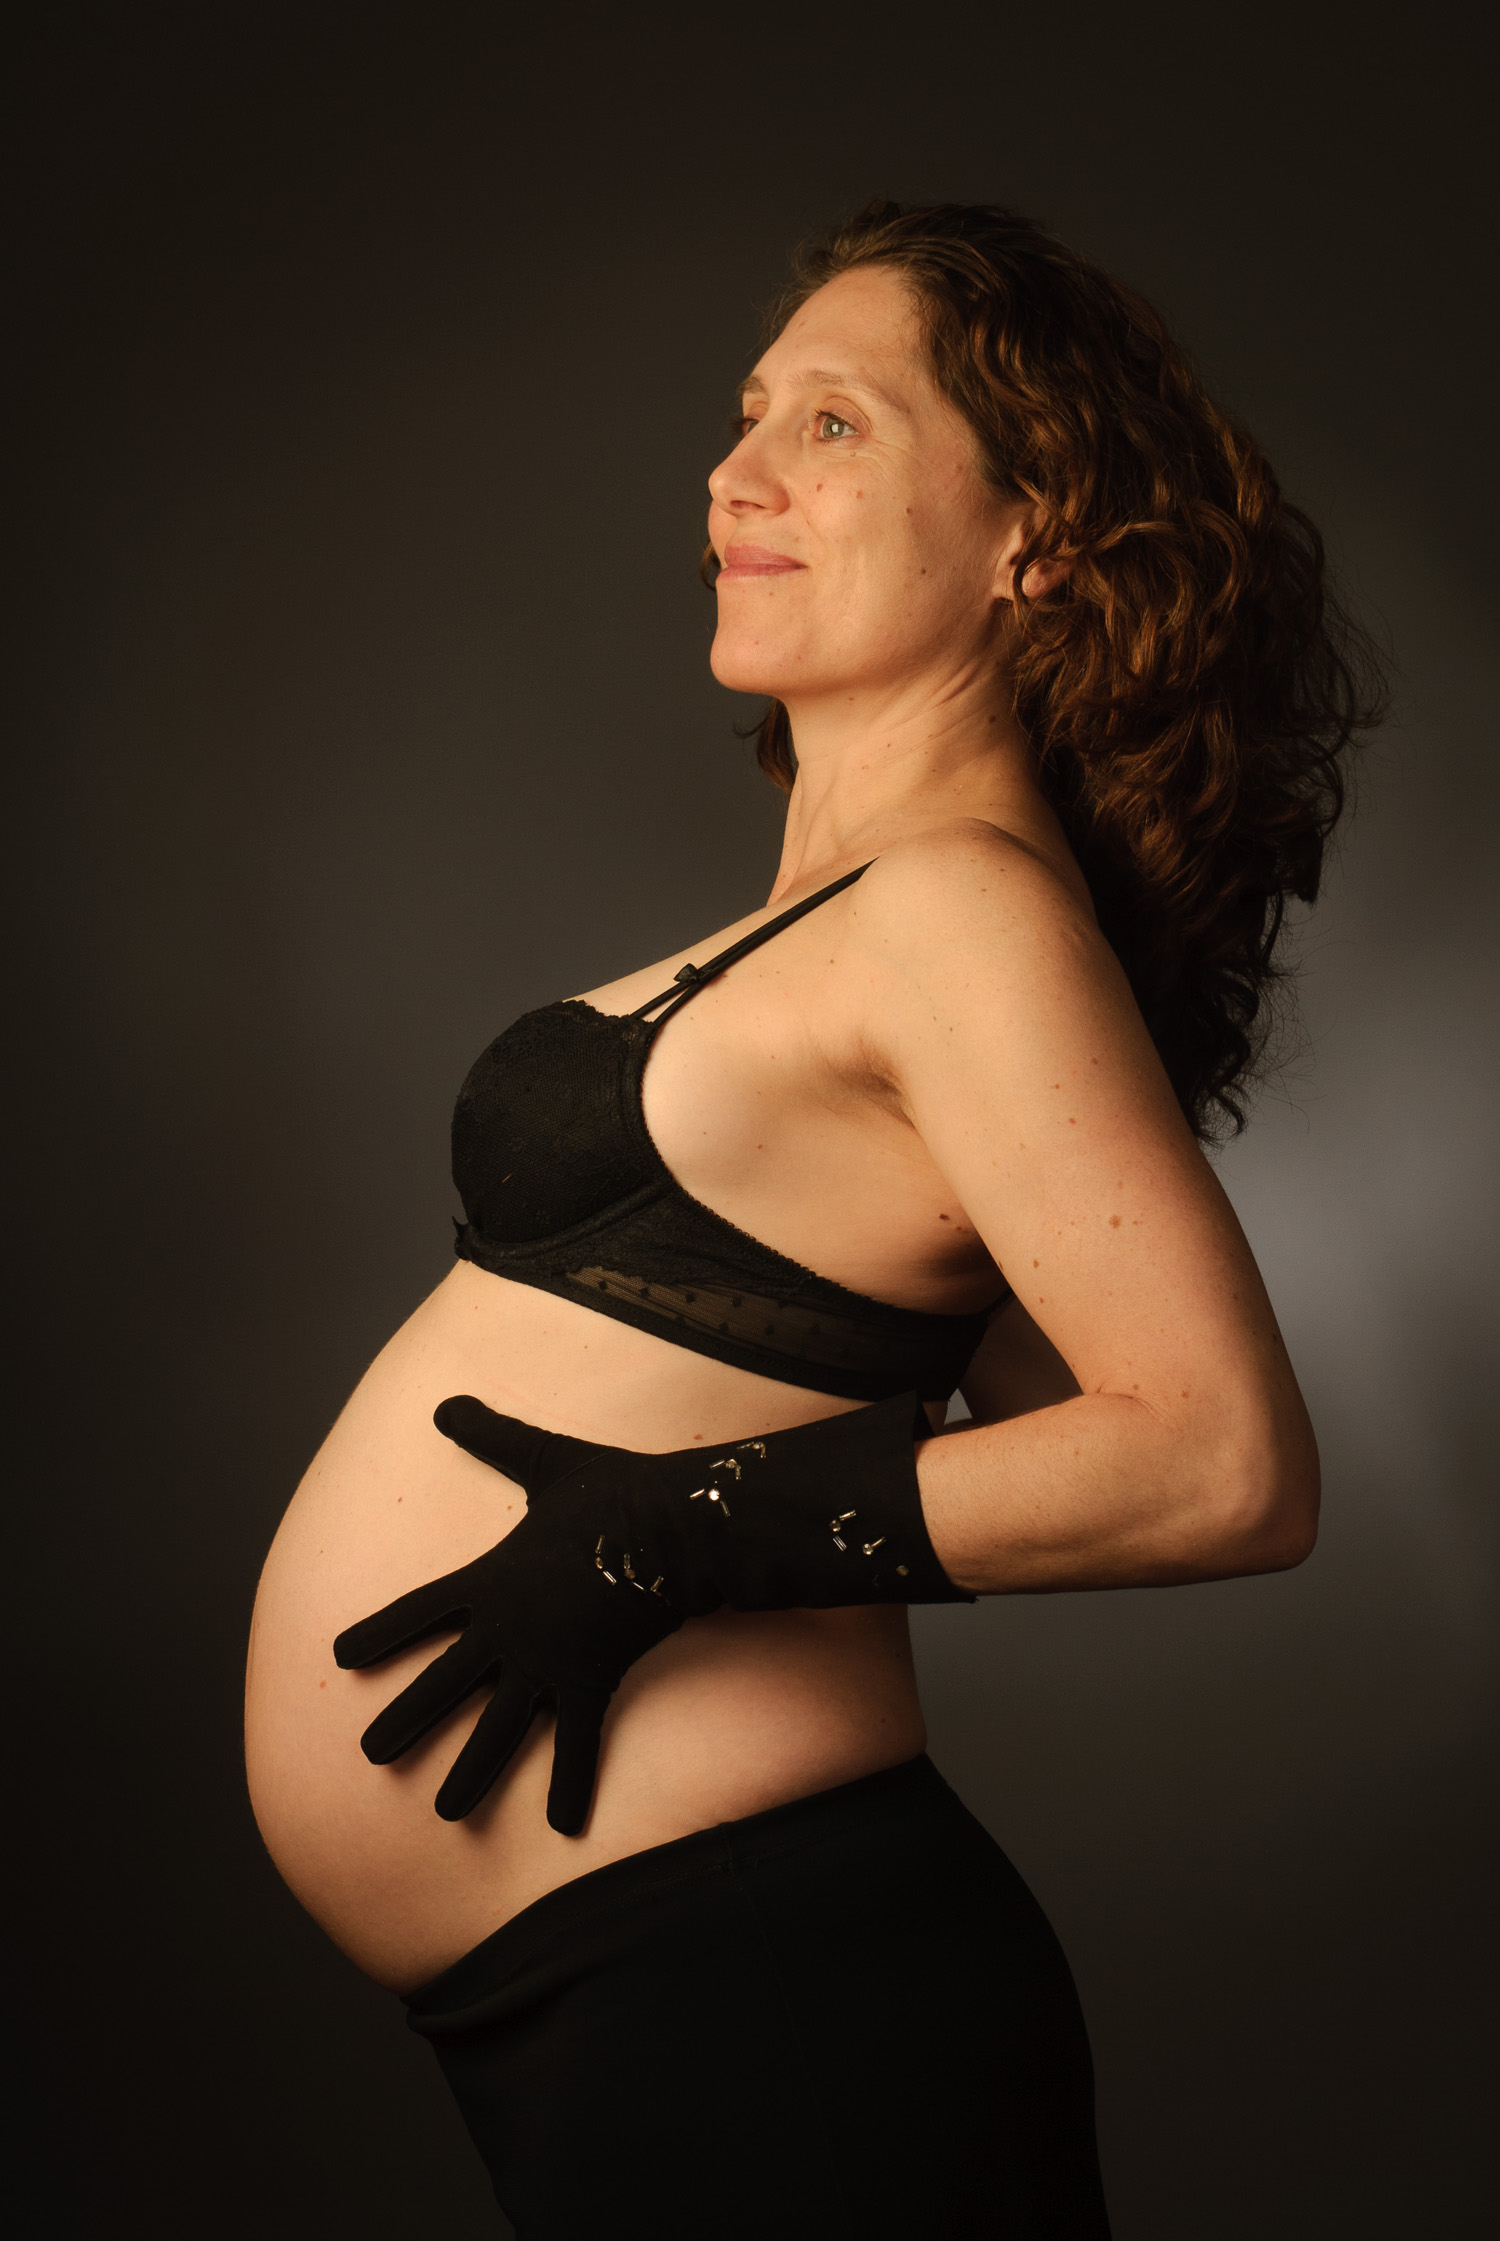 maternity-photography-nyc-38.jpg